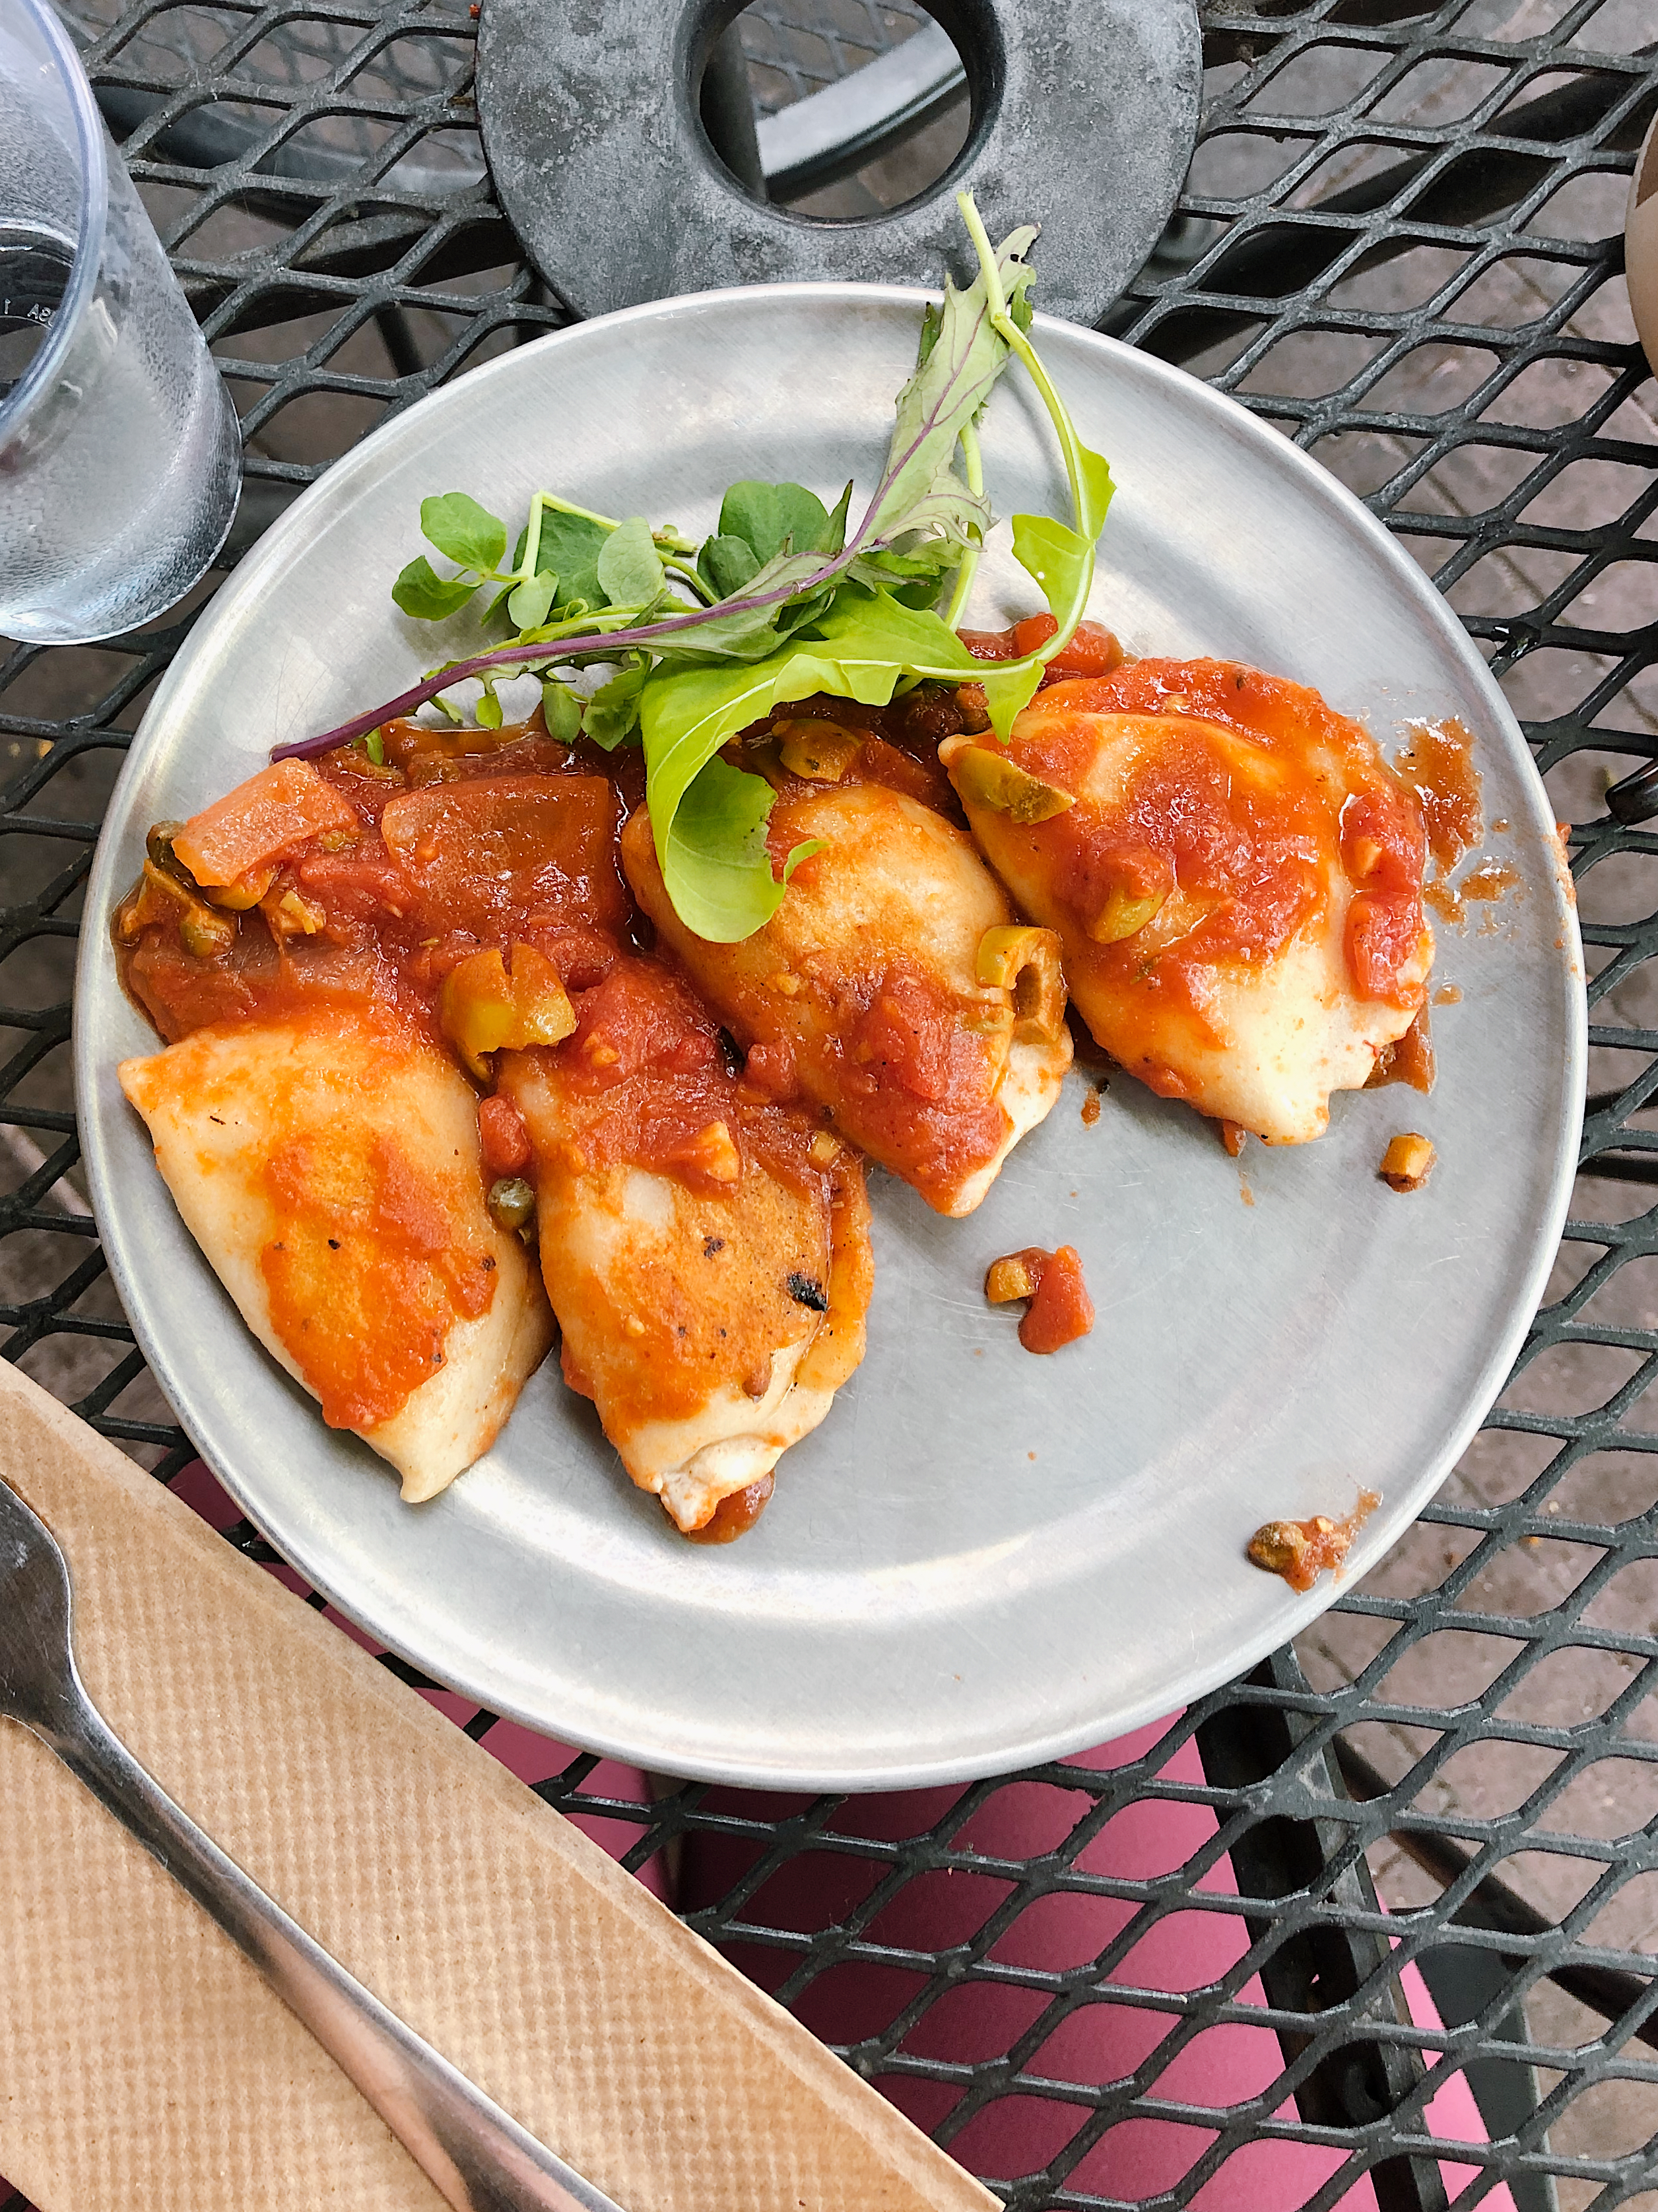 The Ultimate Guide to the BEST Vegan Food in Denver. Pierogies from Urban Beets Cafe in Arvada, CO.